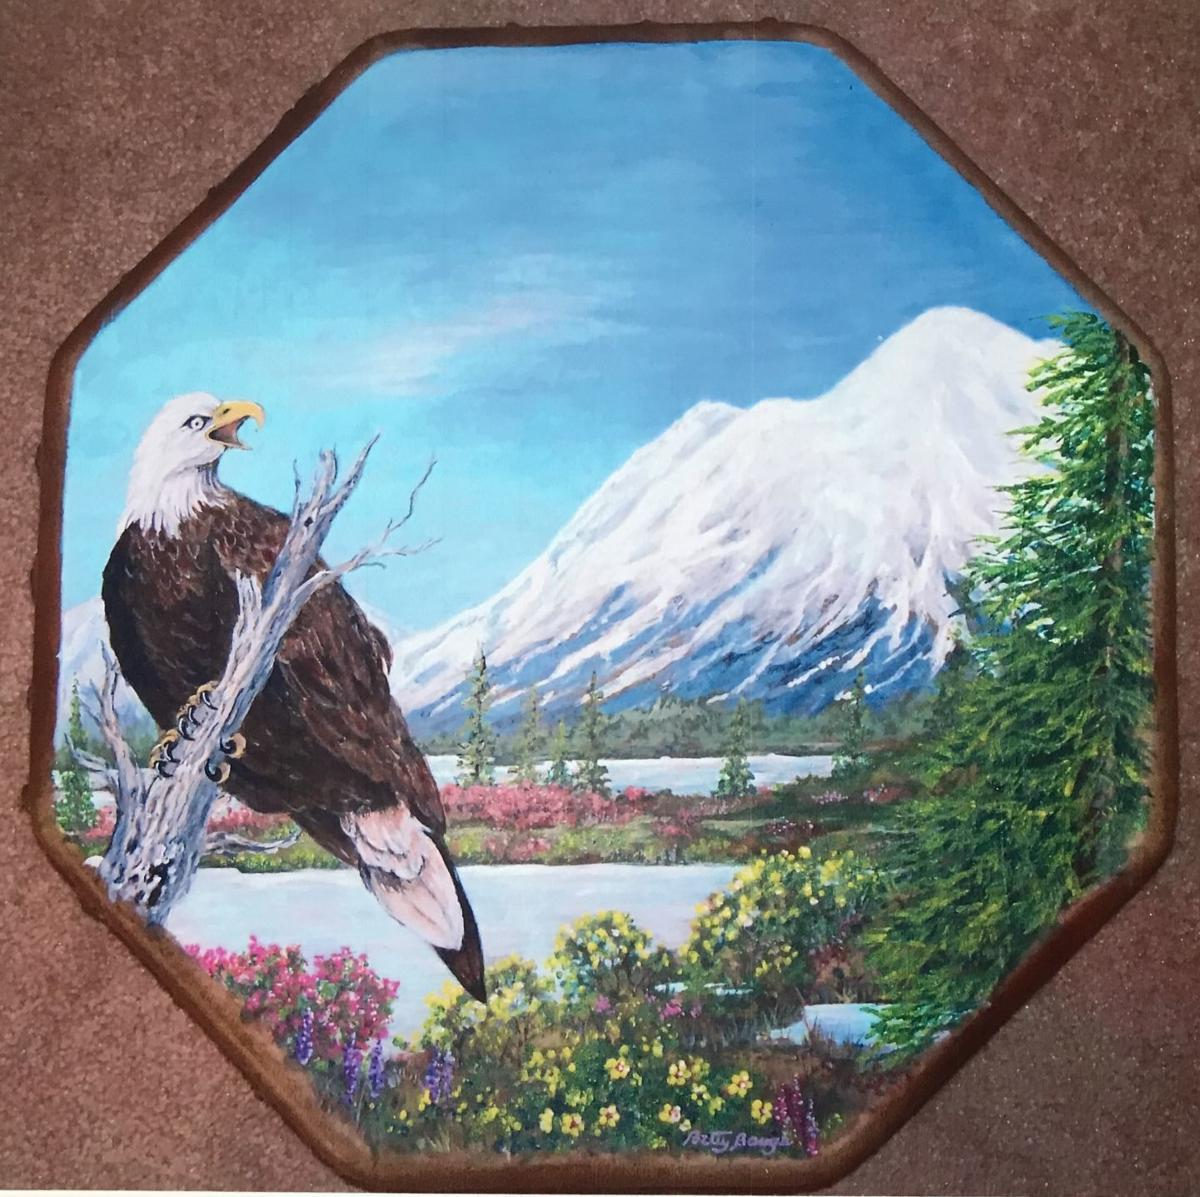 Betty Bangs', Bald Eagle, snow capped mountain drum